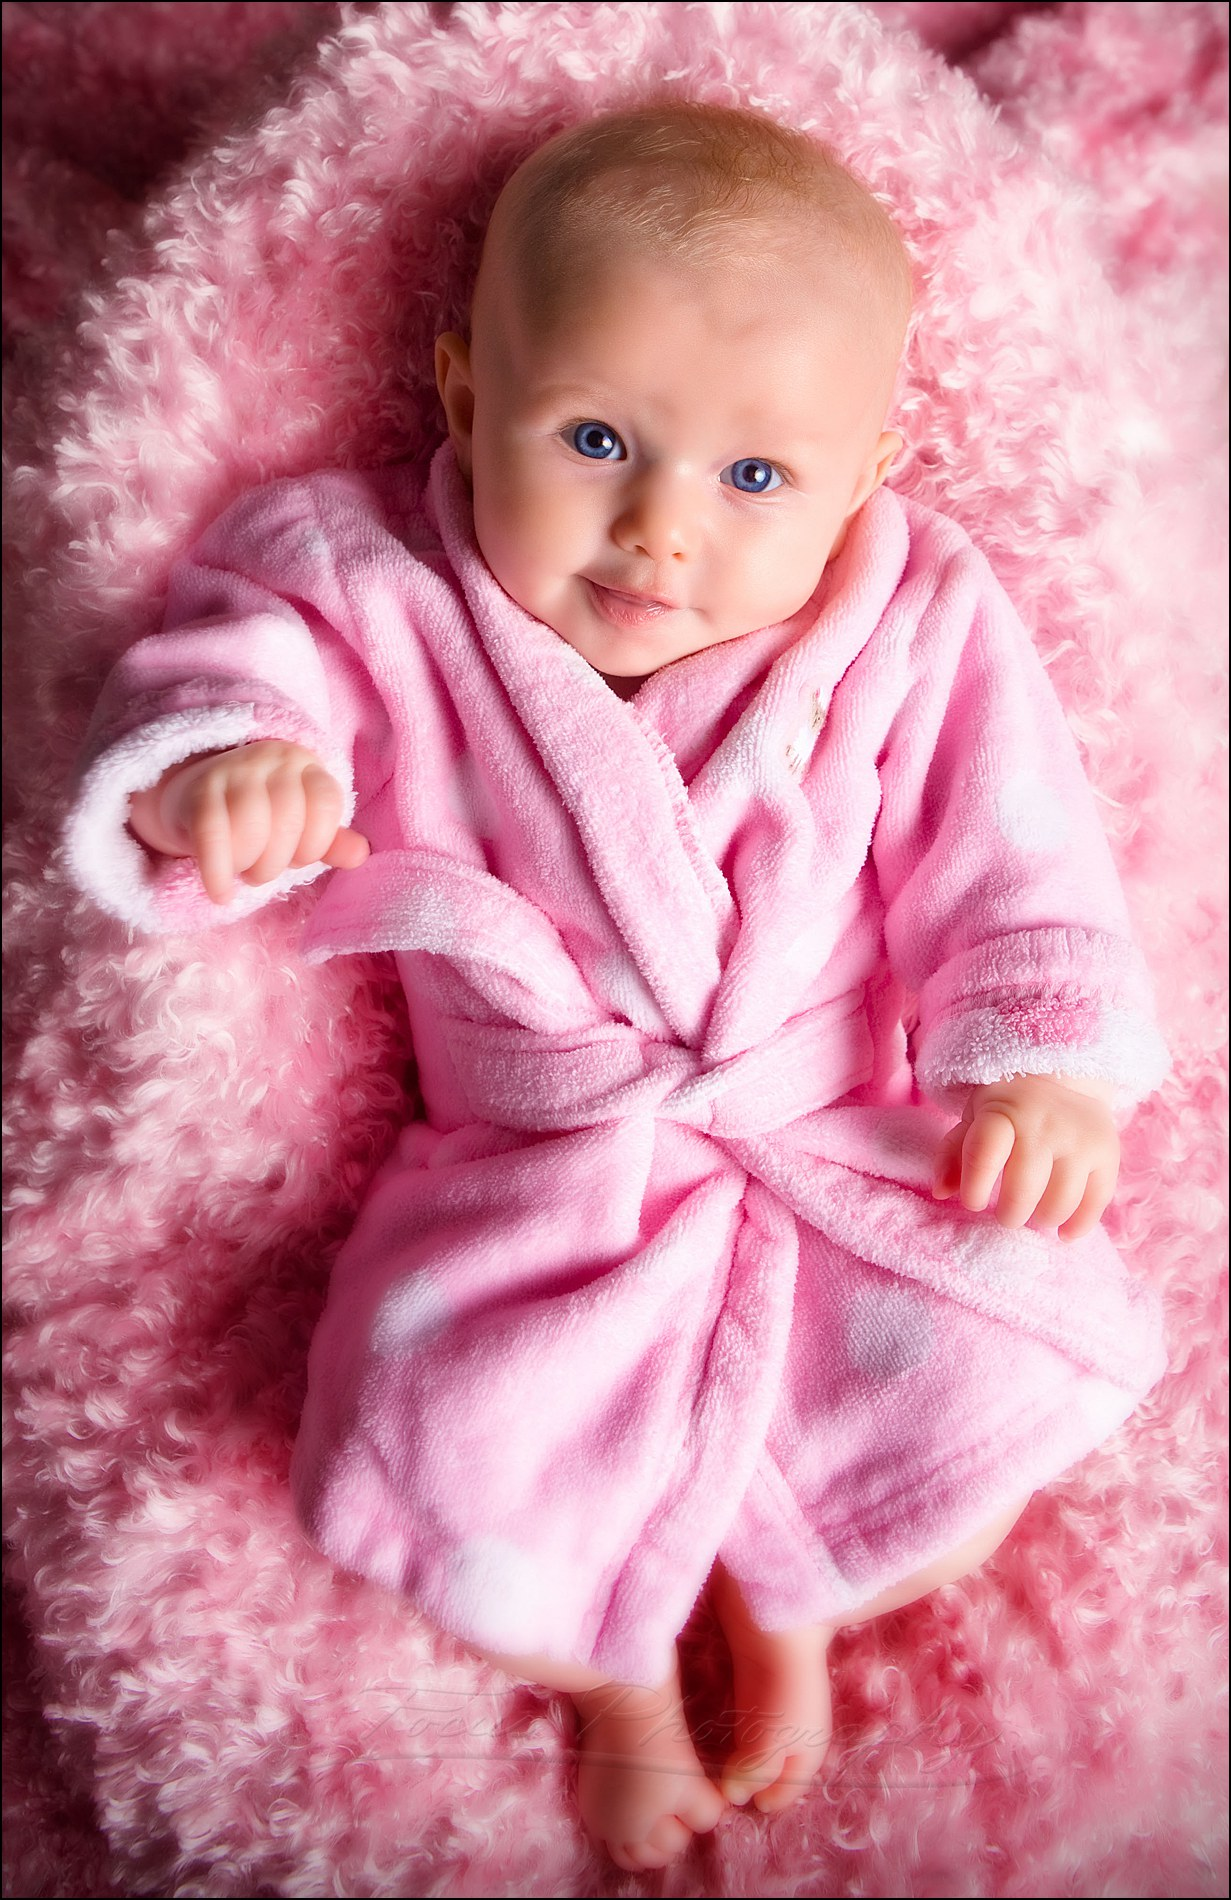 newborn baby girl in pink robe photographed looking up to the camera